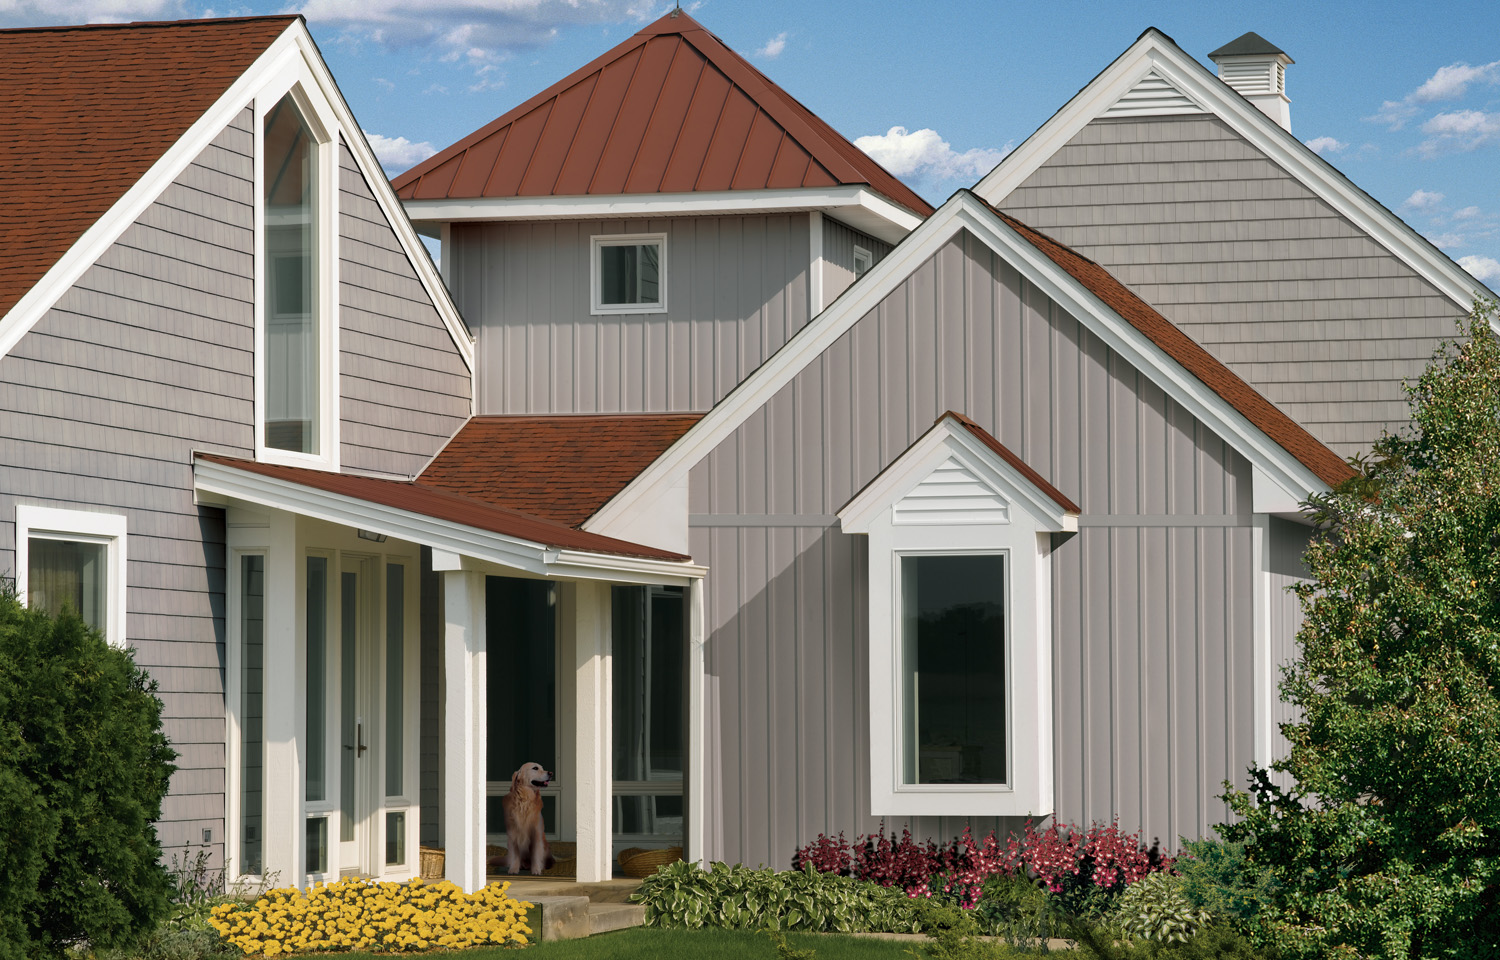 7 Shake Siding Ideas to Enhance Your Home\'s Style